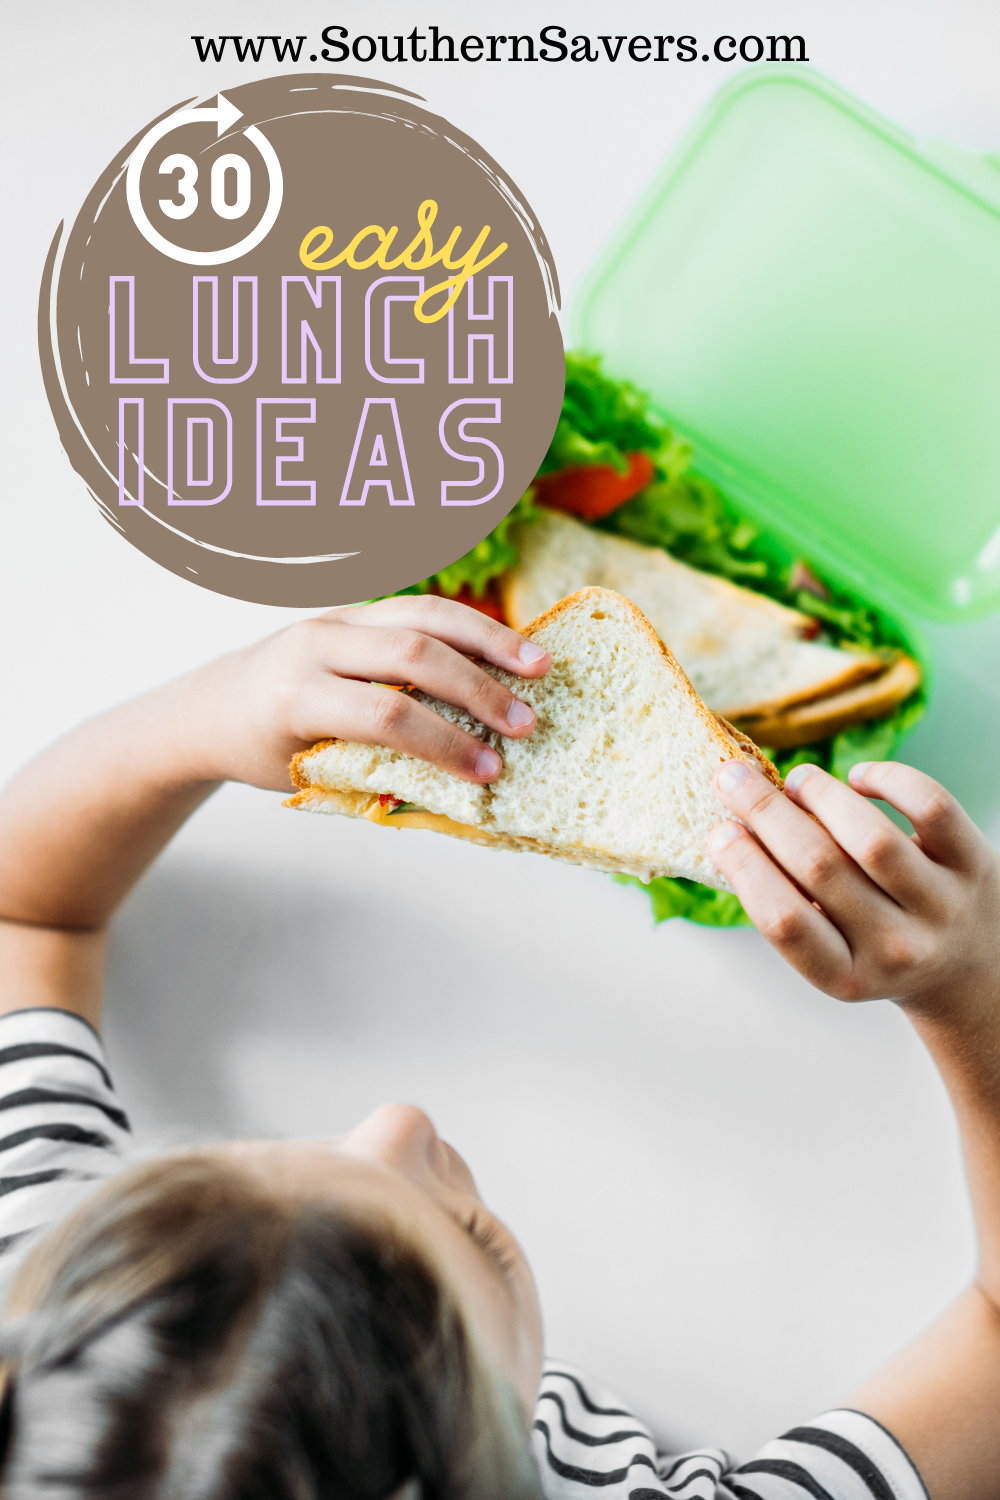 It's easy to get stuck in a rut with lunch, so here are 30 easy ideas to inspire you if you're tired of eating the same old things!